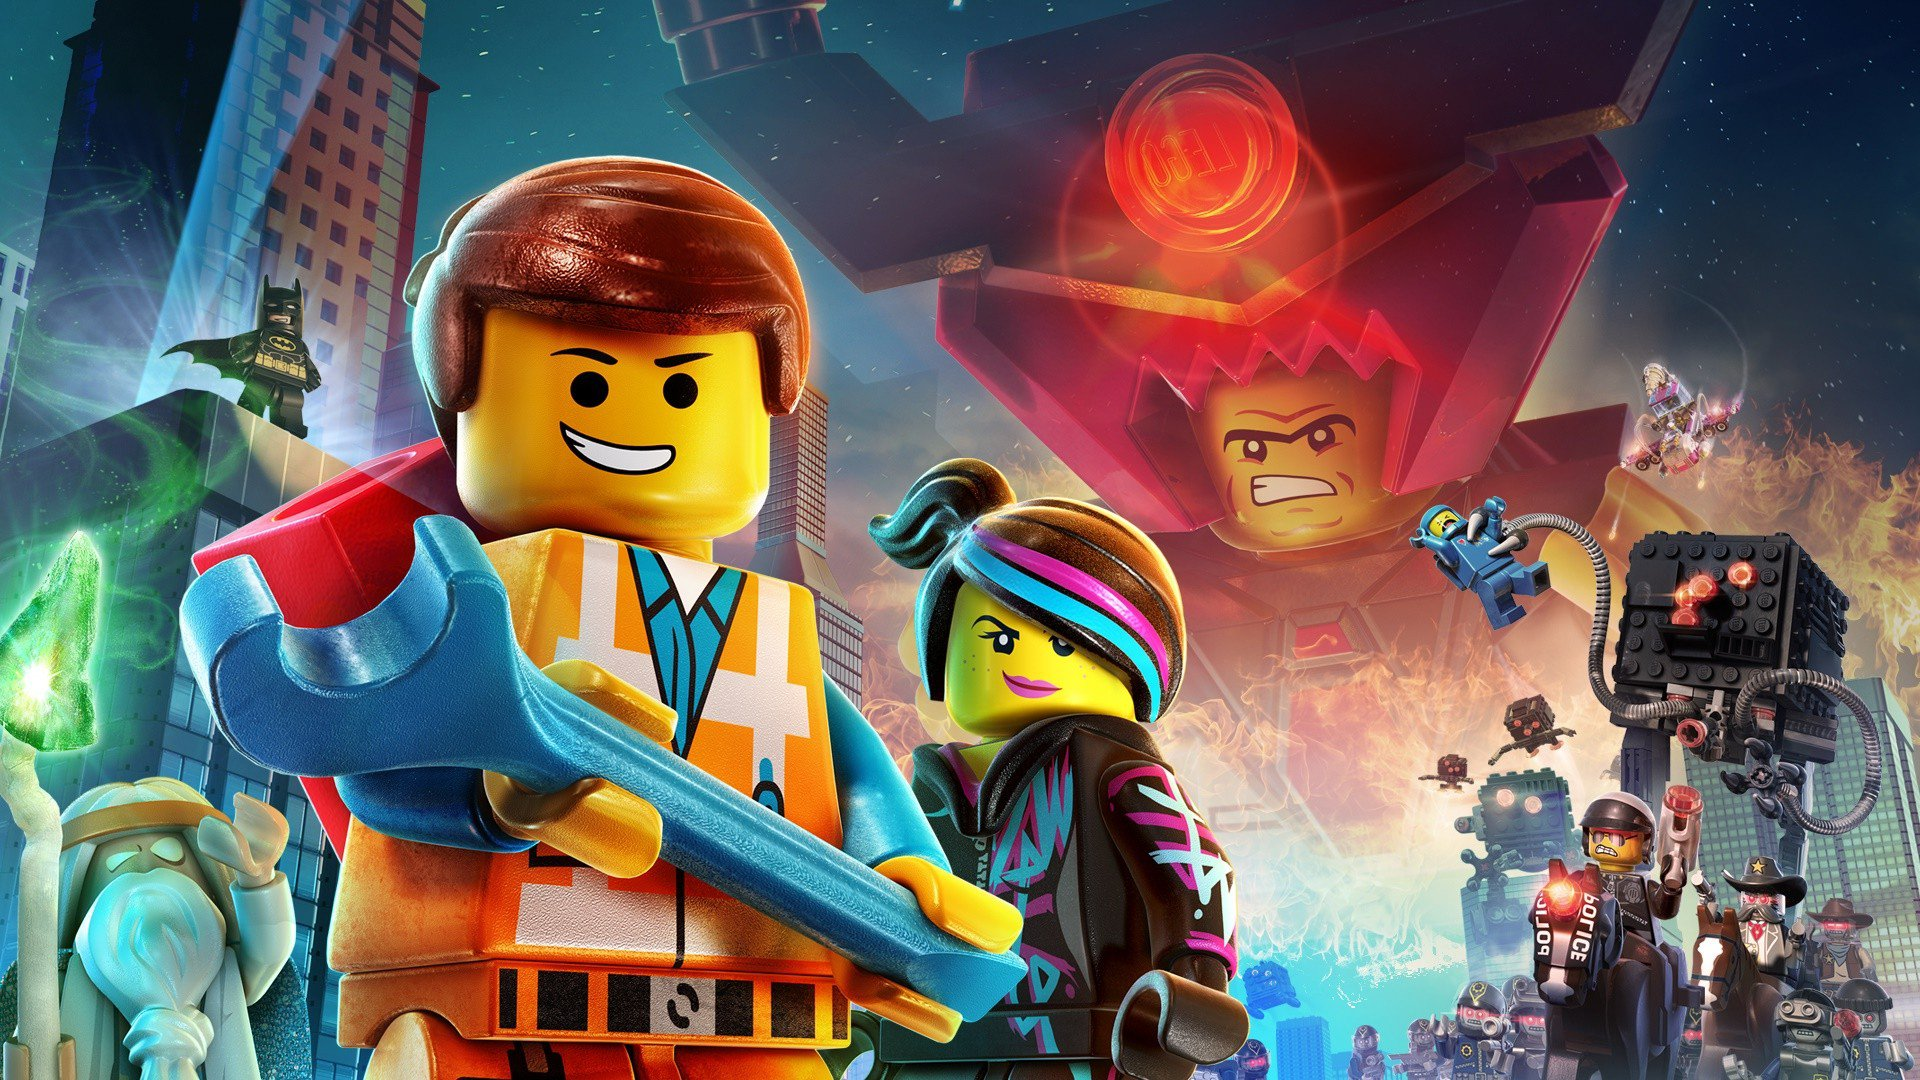 The Lego Movie Hd Movies 4k Wallpapers Images Backgrounds Photos And Pictures